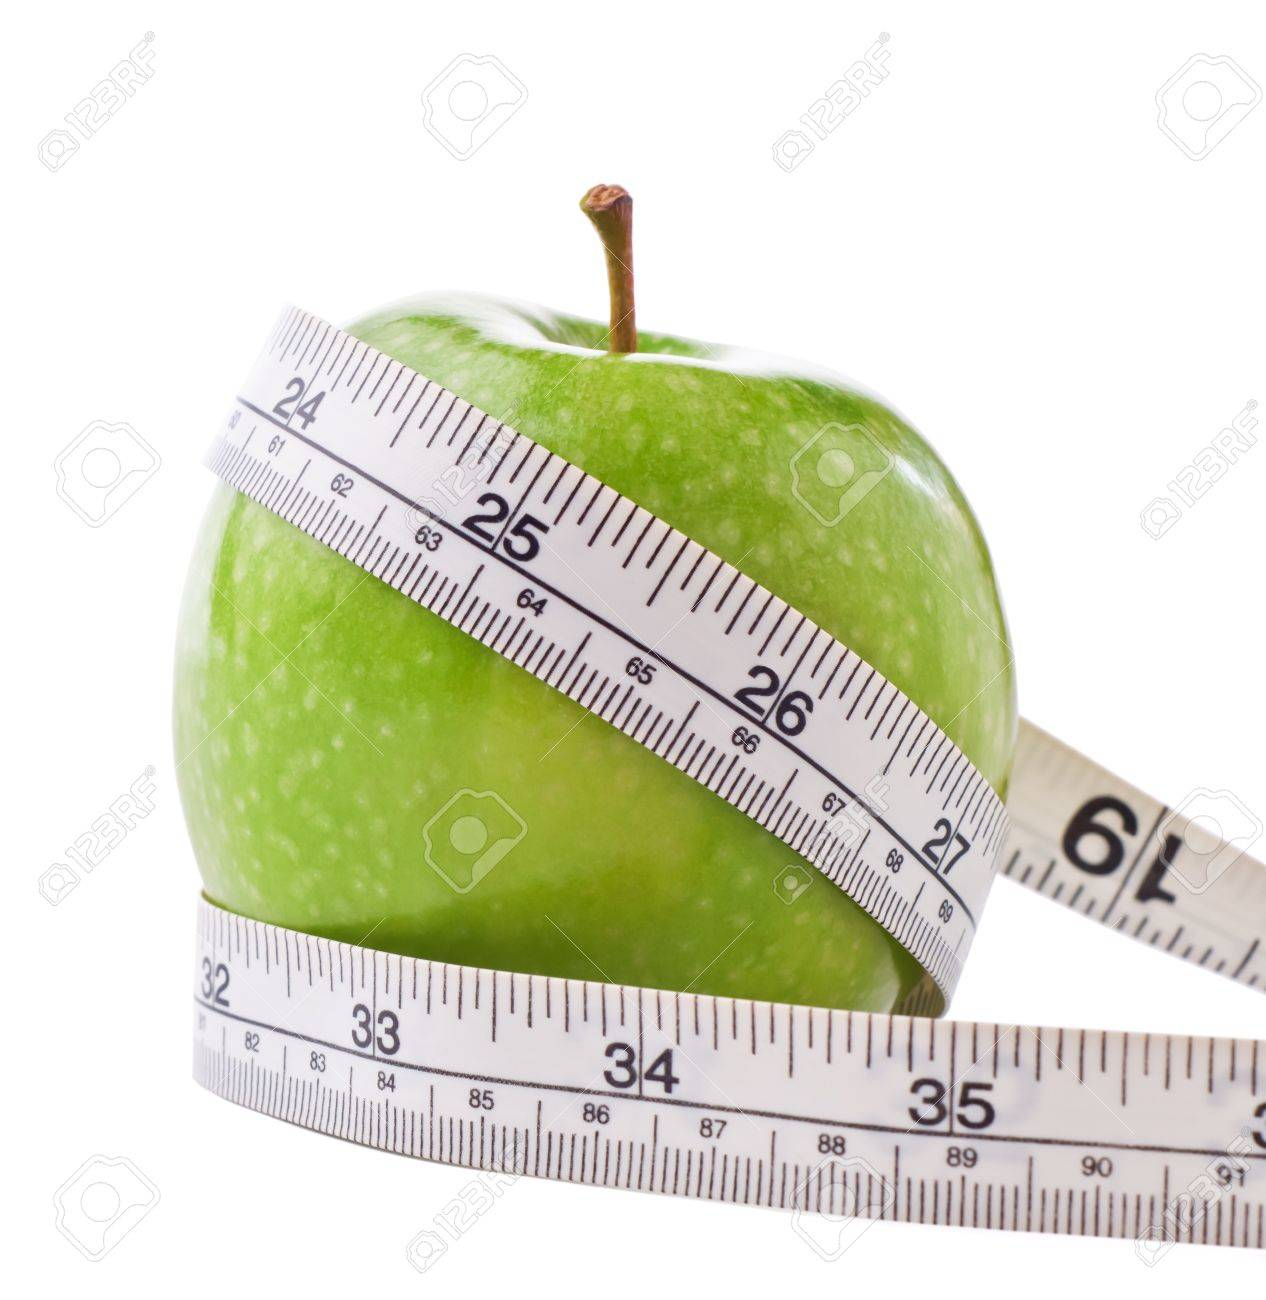 A green shiny Apple, wrapped with a white metric and imperial measuring tape to signify dieting and weight loss.  Isolated on white background with slight shadows retained. Stock Photo - 8898230